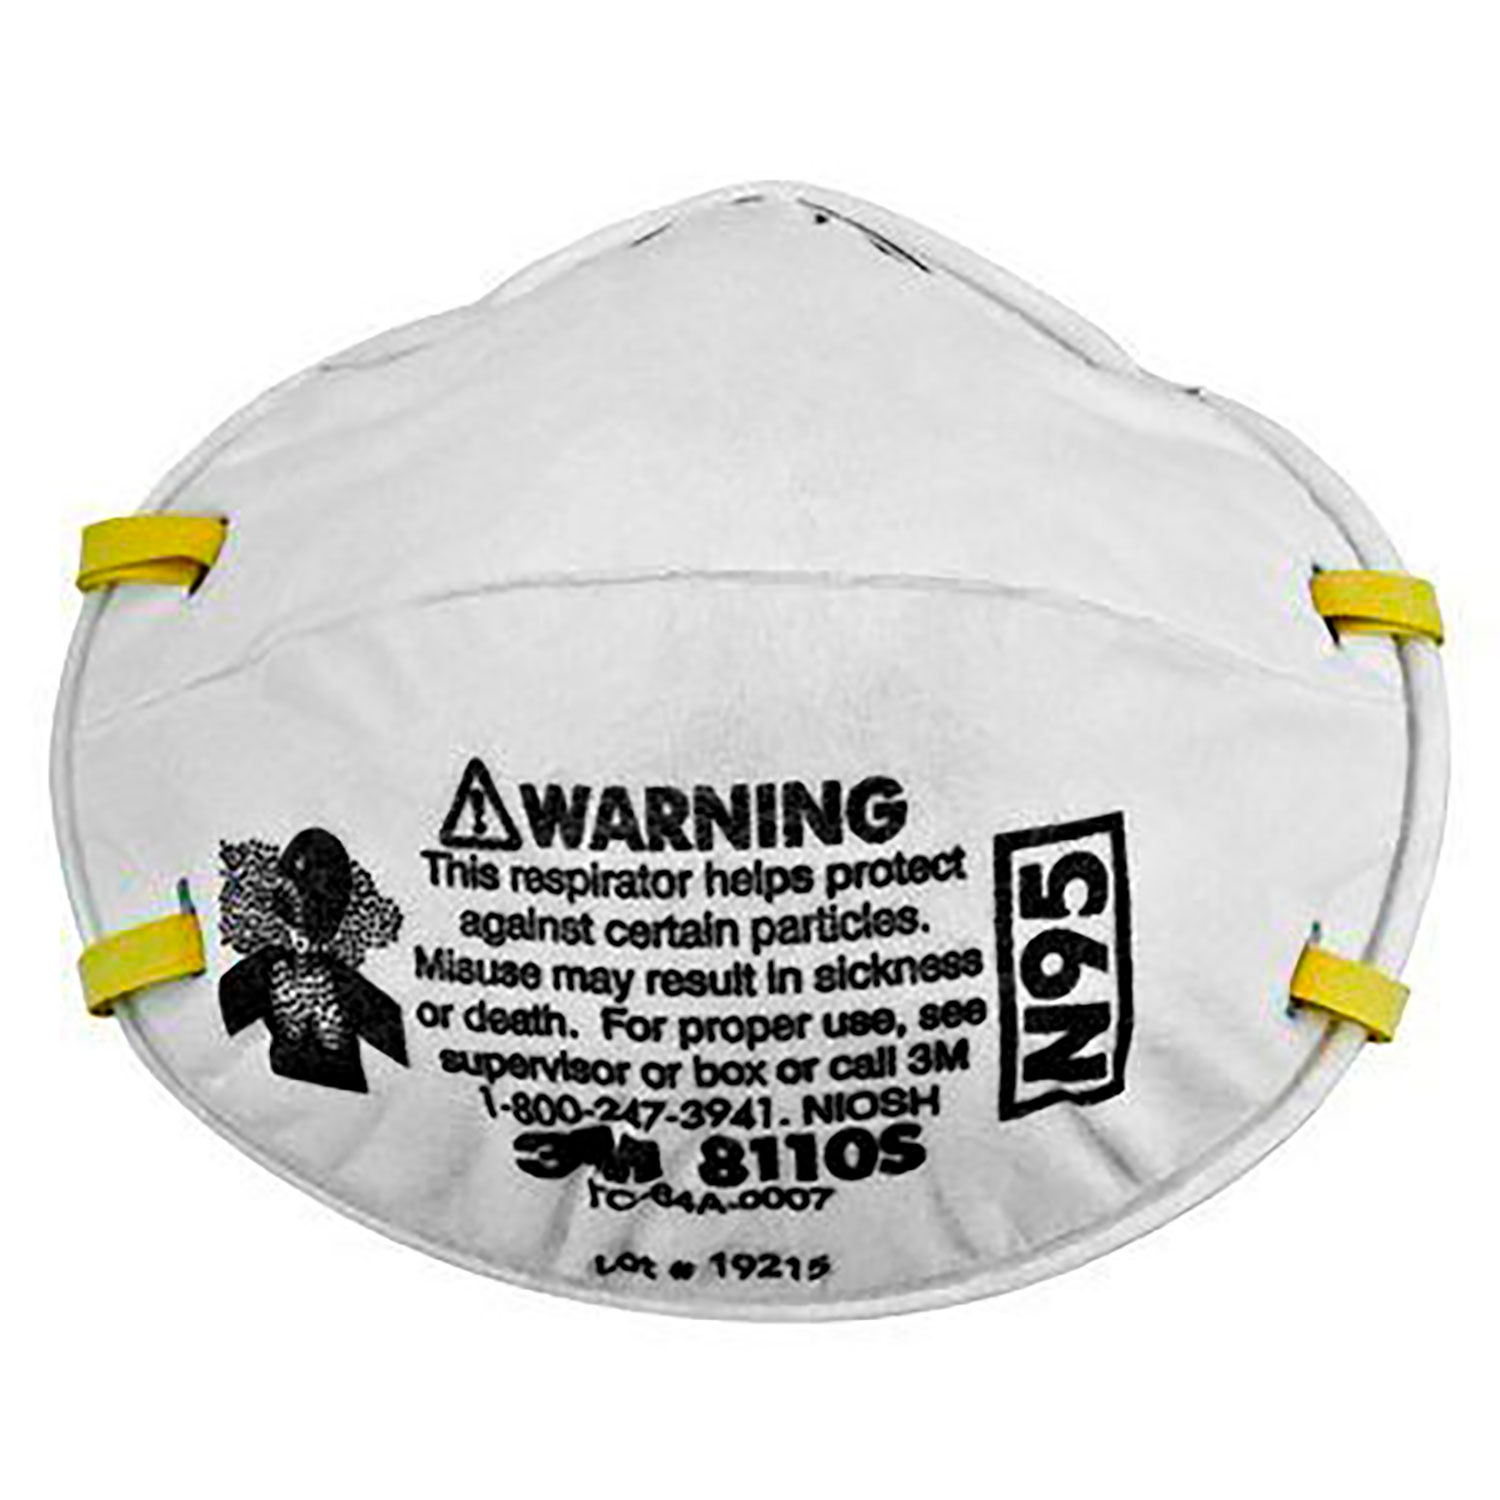 3m™ Respiratory Disposable Protection 8110s Respirators